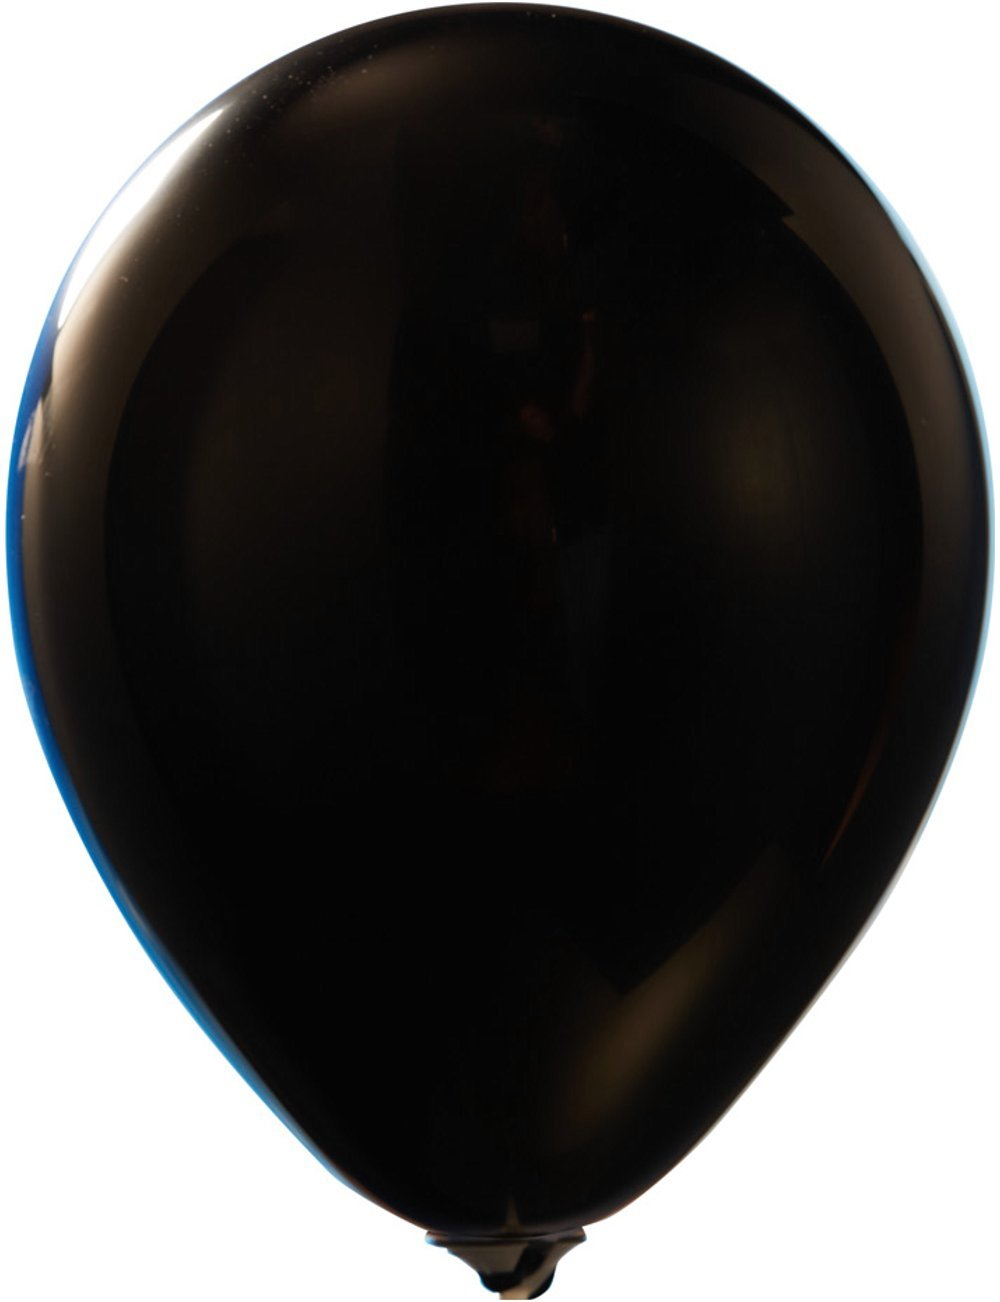 Black 12 Latex Balloons - Crystal (50-Count) Colorful Happy Birthday Party, Gender Reveal, Baby Shower Or Event Use | Fill with Air Or Helium | Kid-Friendly | Party Zone